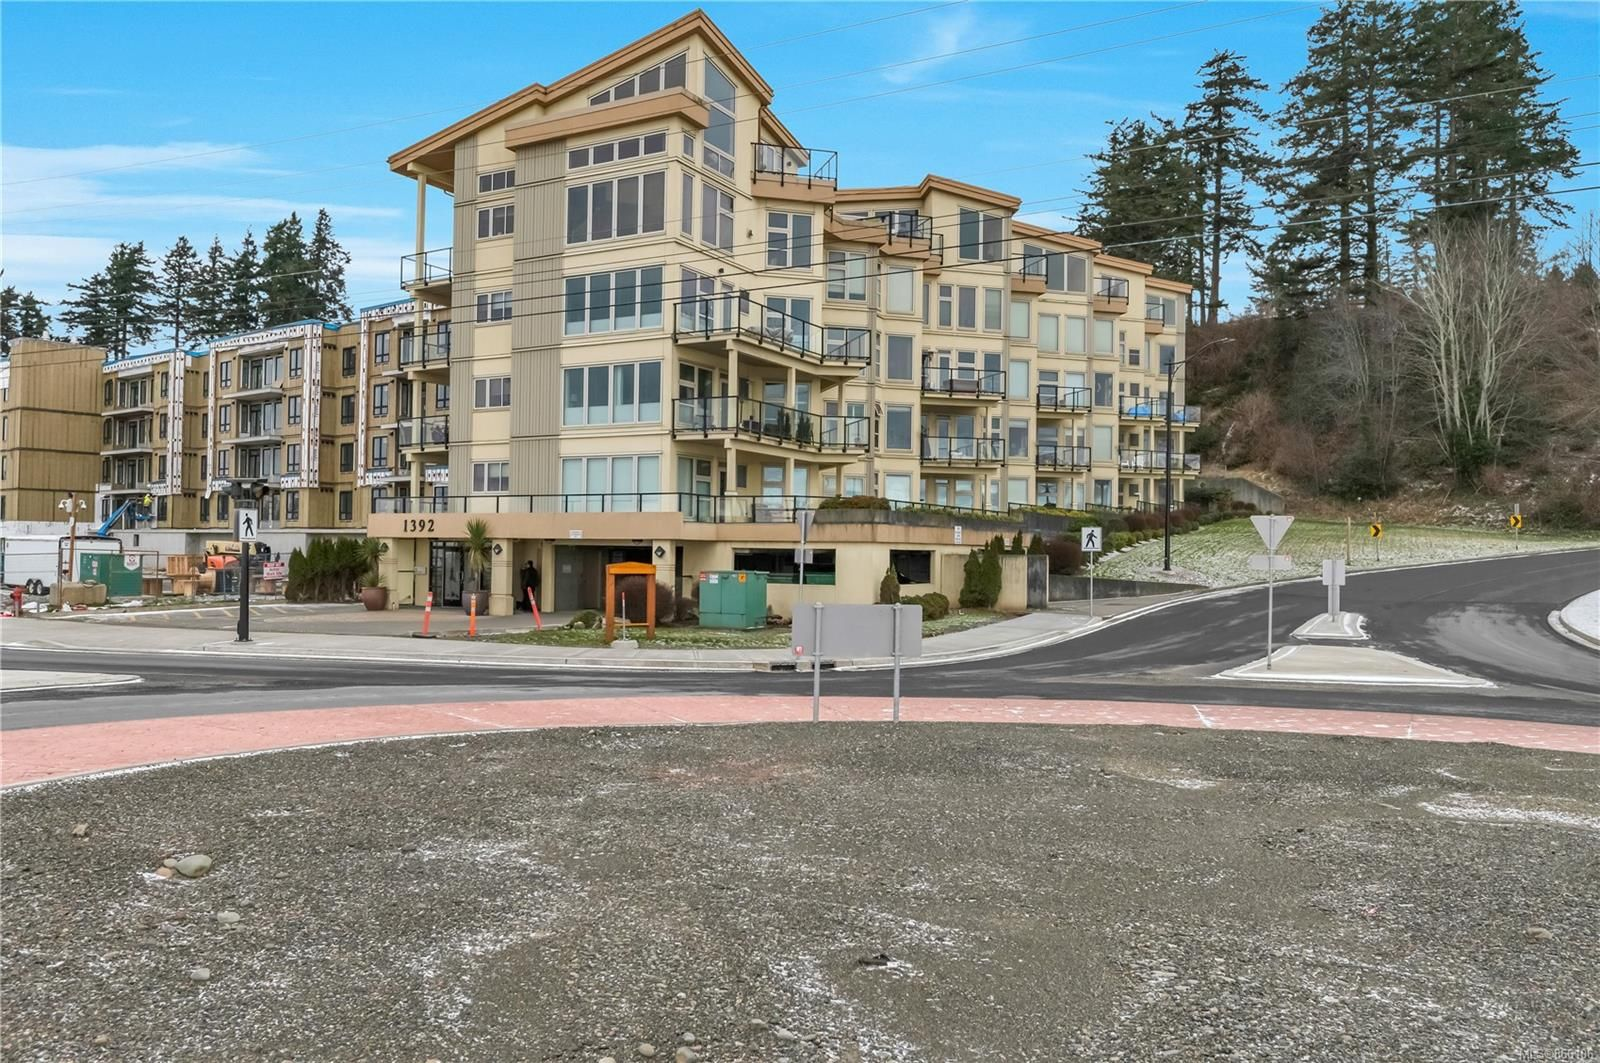 Main Photo: 203 1392 S Island Hwy in : CR Campbell River Central Condo for sale (Campbell River)  : MLS®# 866106